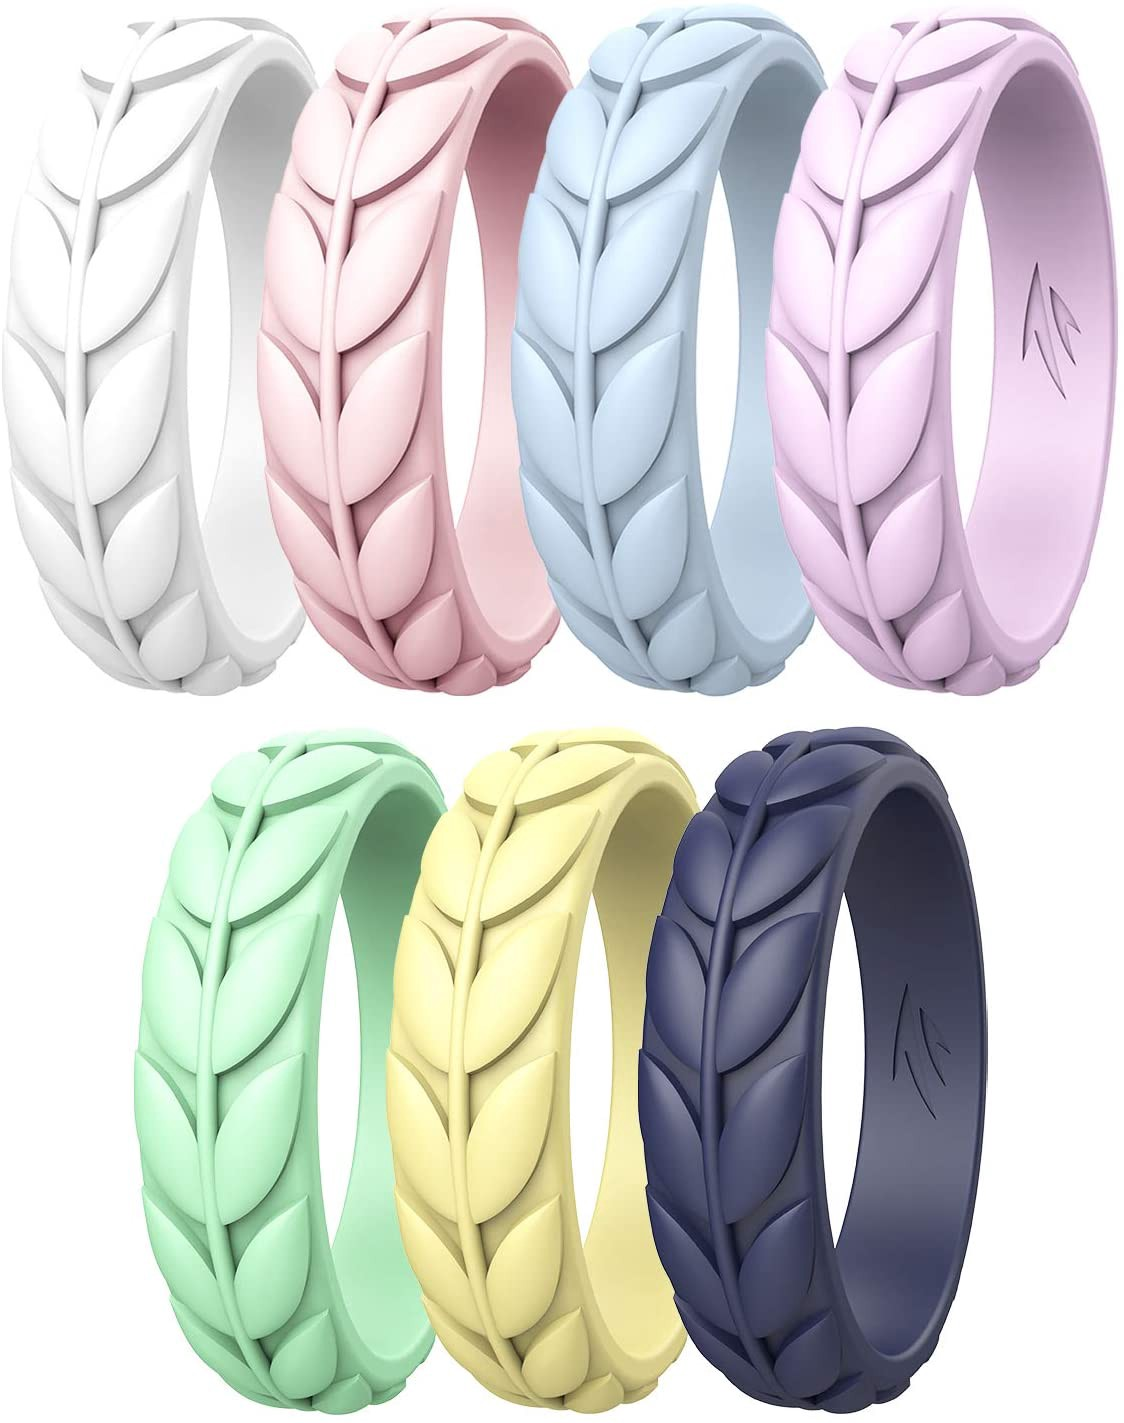 Silicone Wedding Rings for Women, Rubber Wedding Bands Stackable Ring, Hypoallergenic Silicone